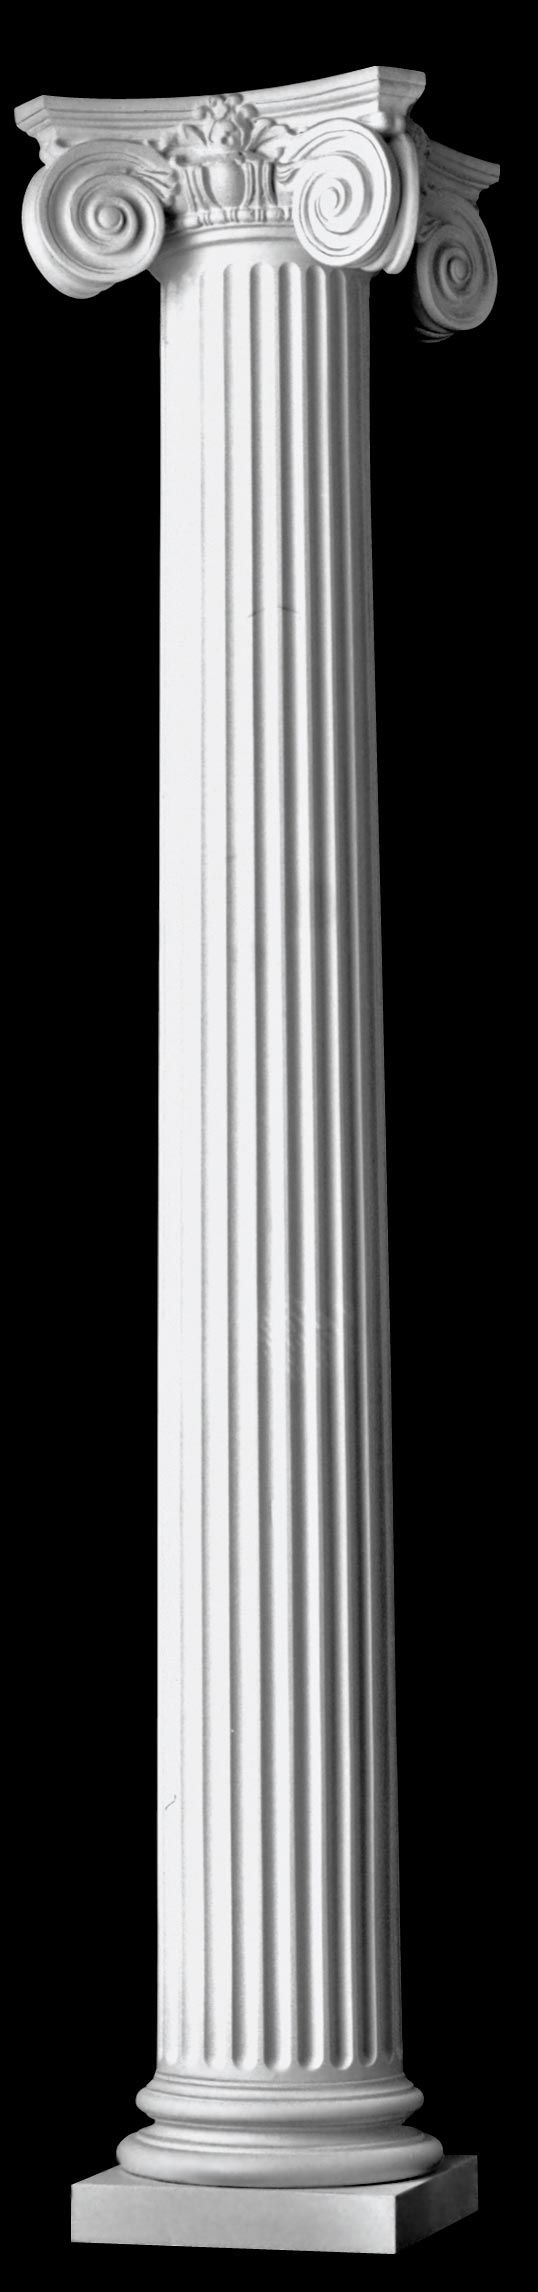 1000 ideas about wood columns on pinterest column base for Tapered columns